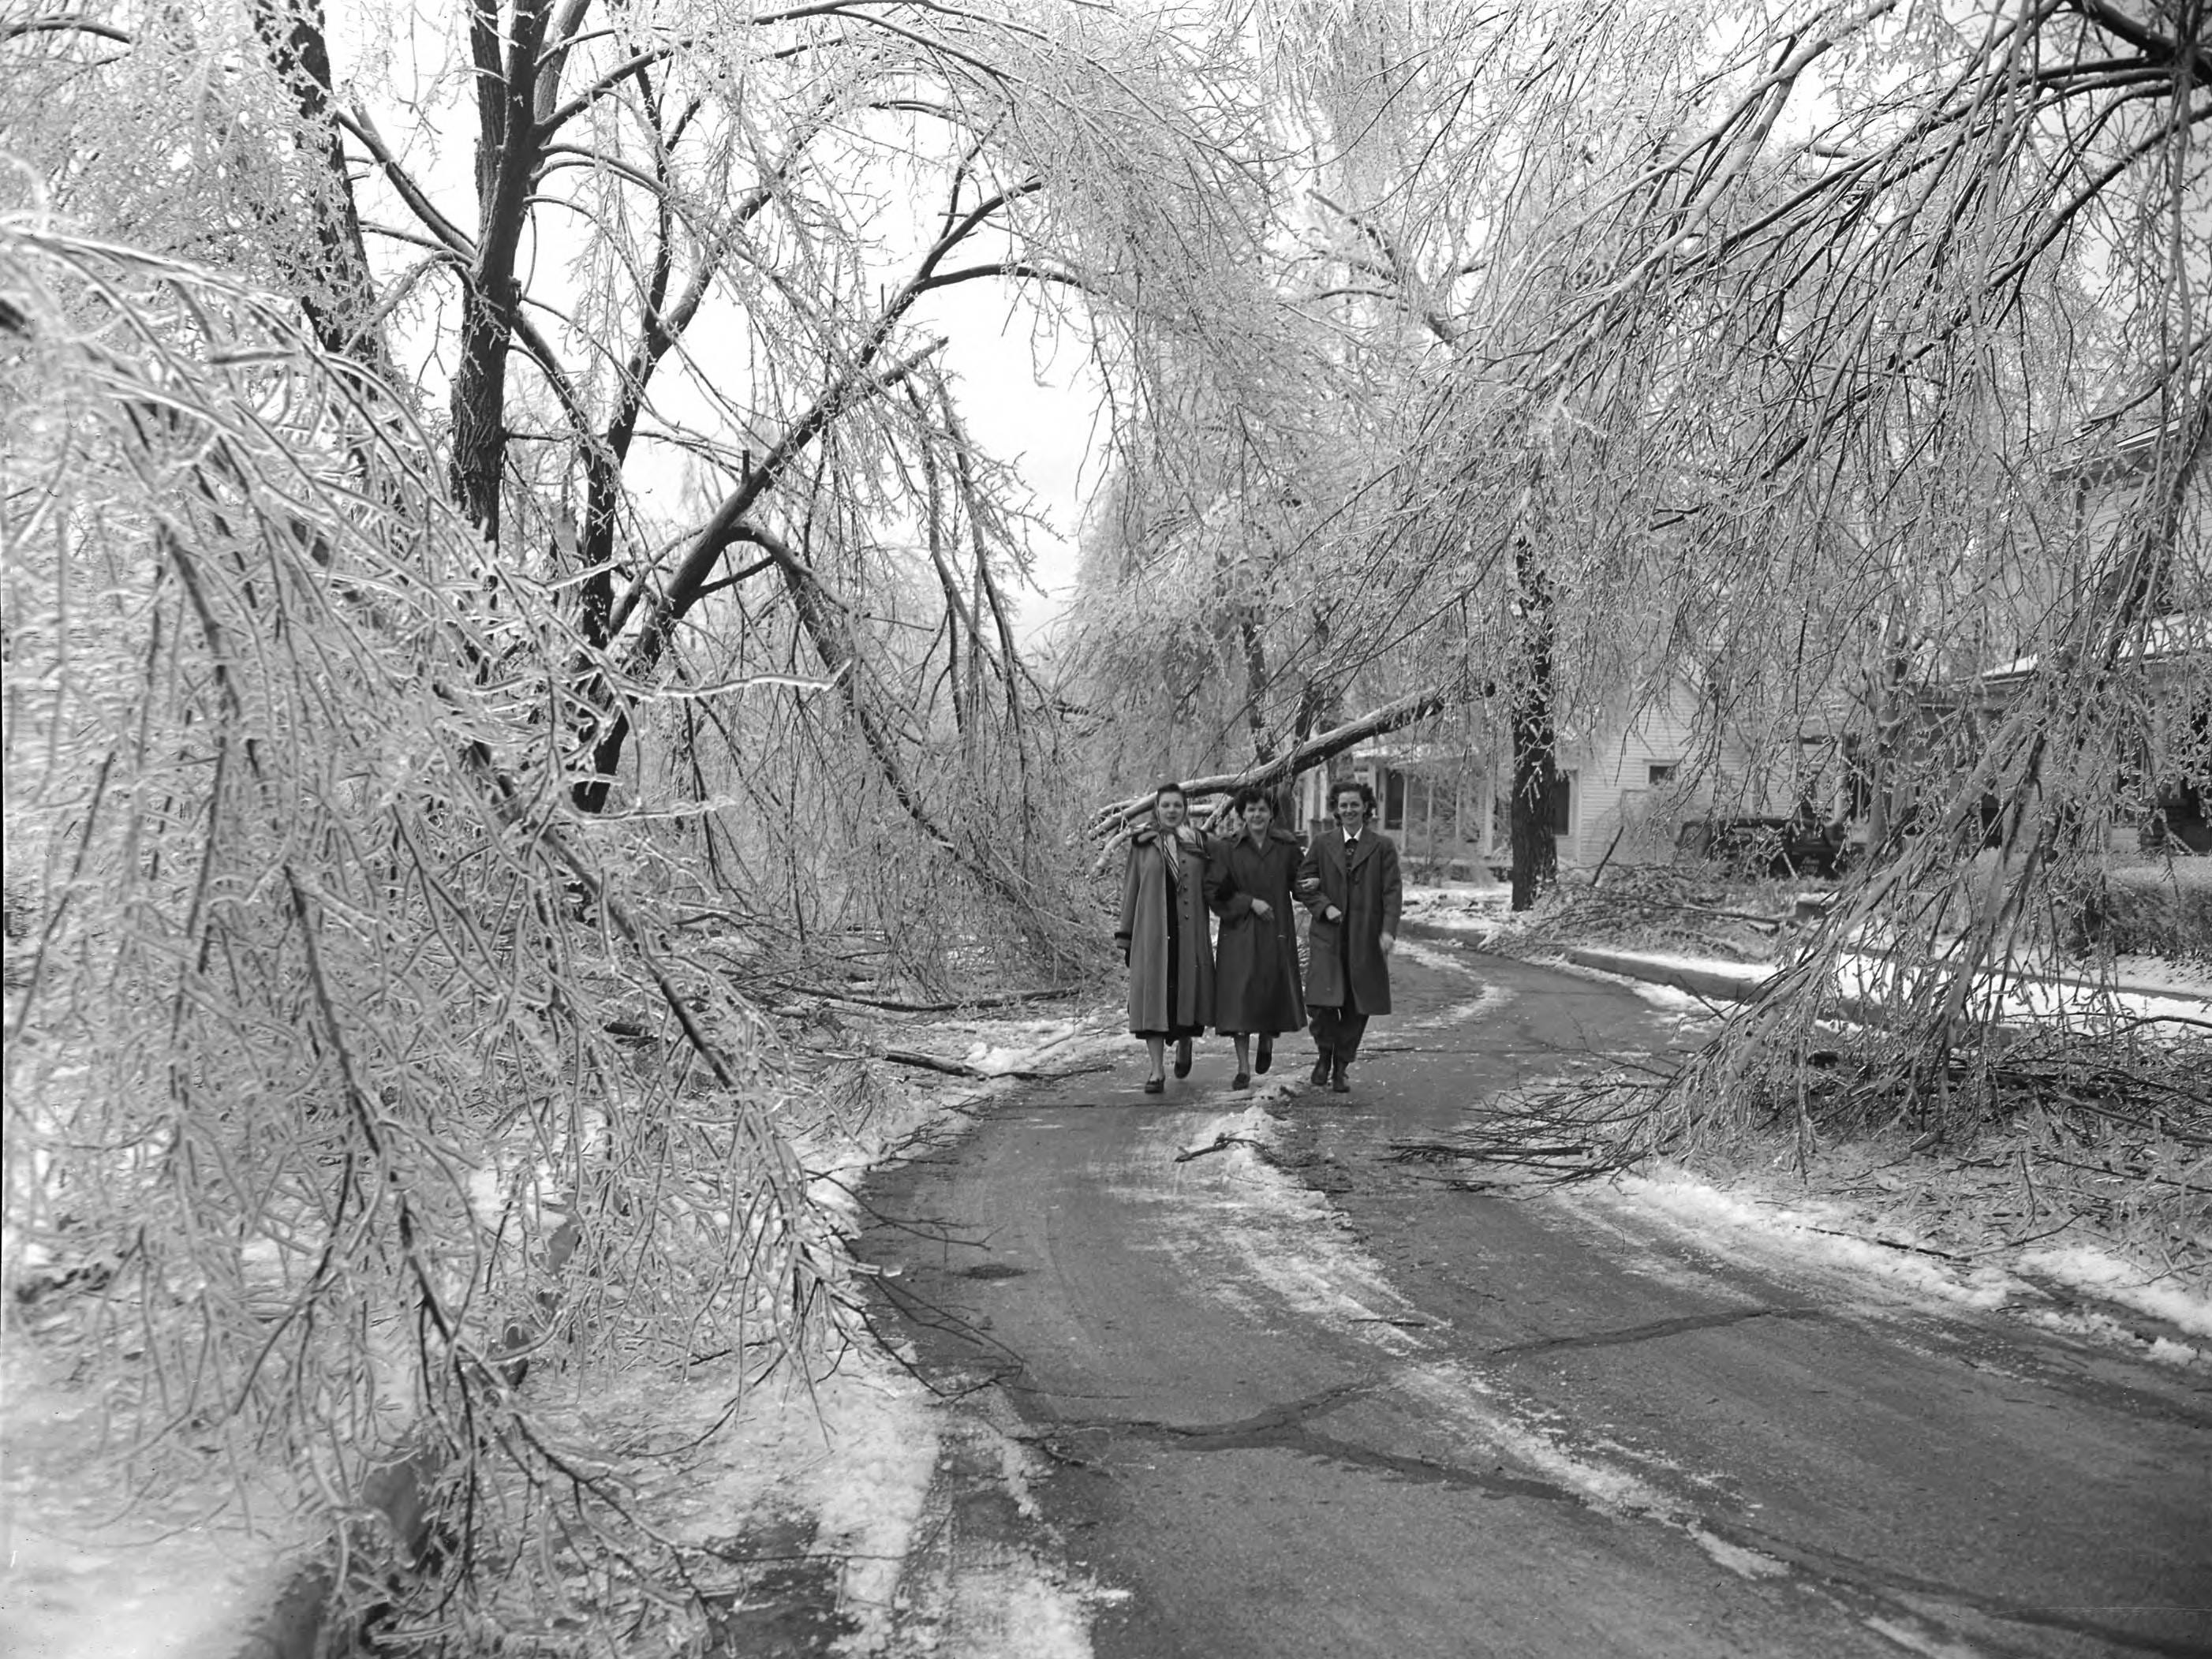 Janetta Fairchild, Betty Brooks, and Odean Burton (from left to right) on the 800 block of Connor street in Joplin, Missouri during the ice storm of January 1949. Photograph published in the Springfield Daily News on January 15, 1949.